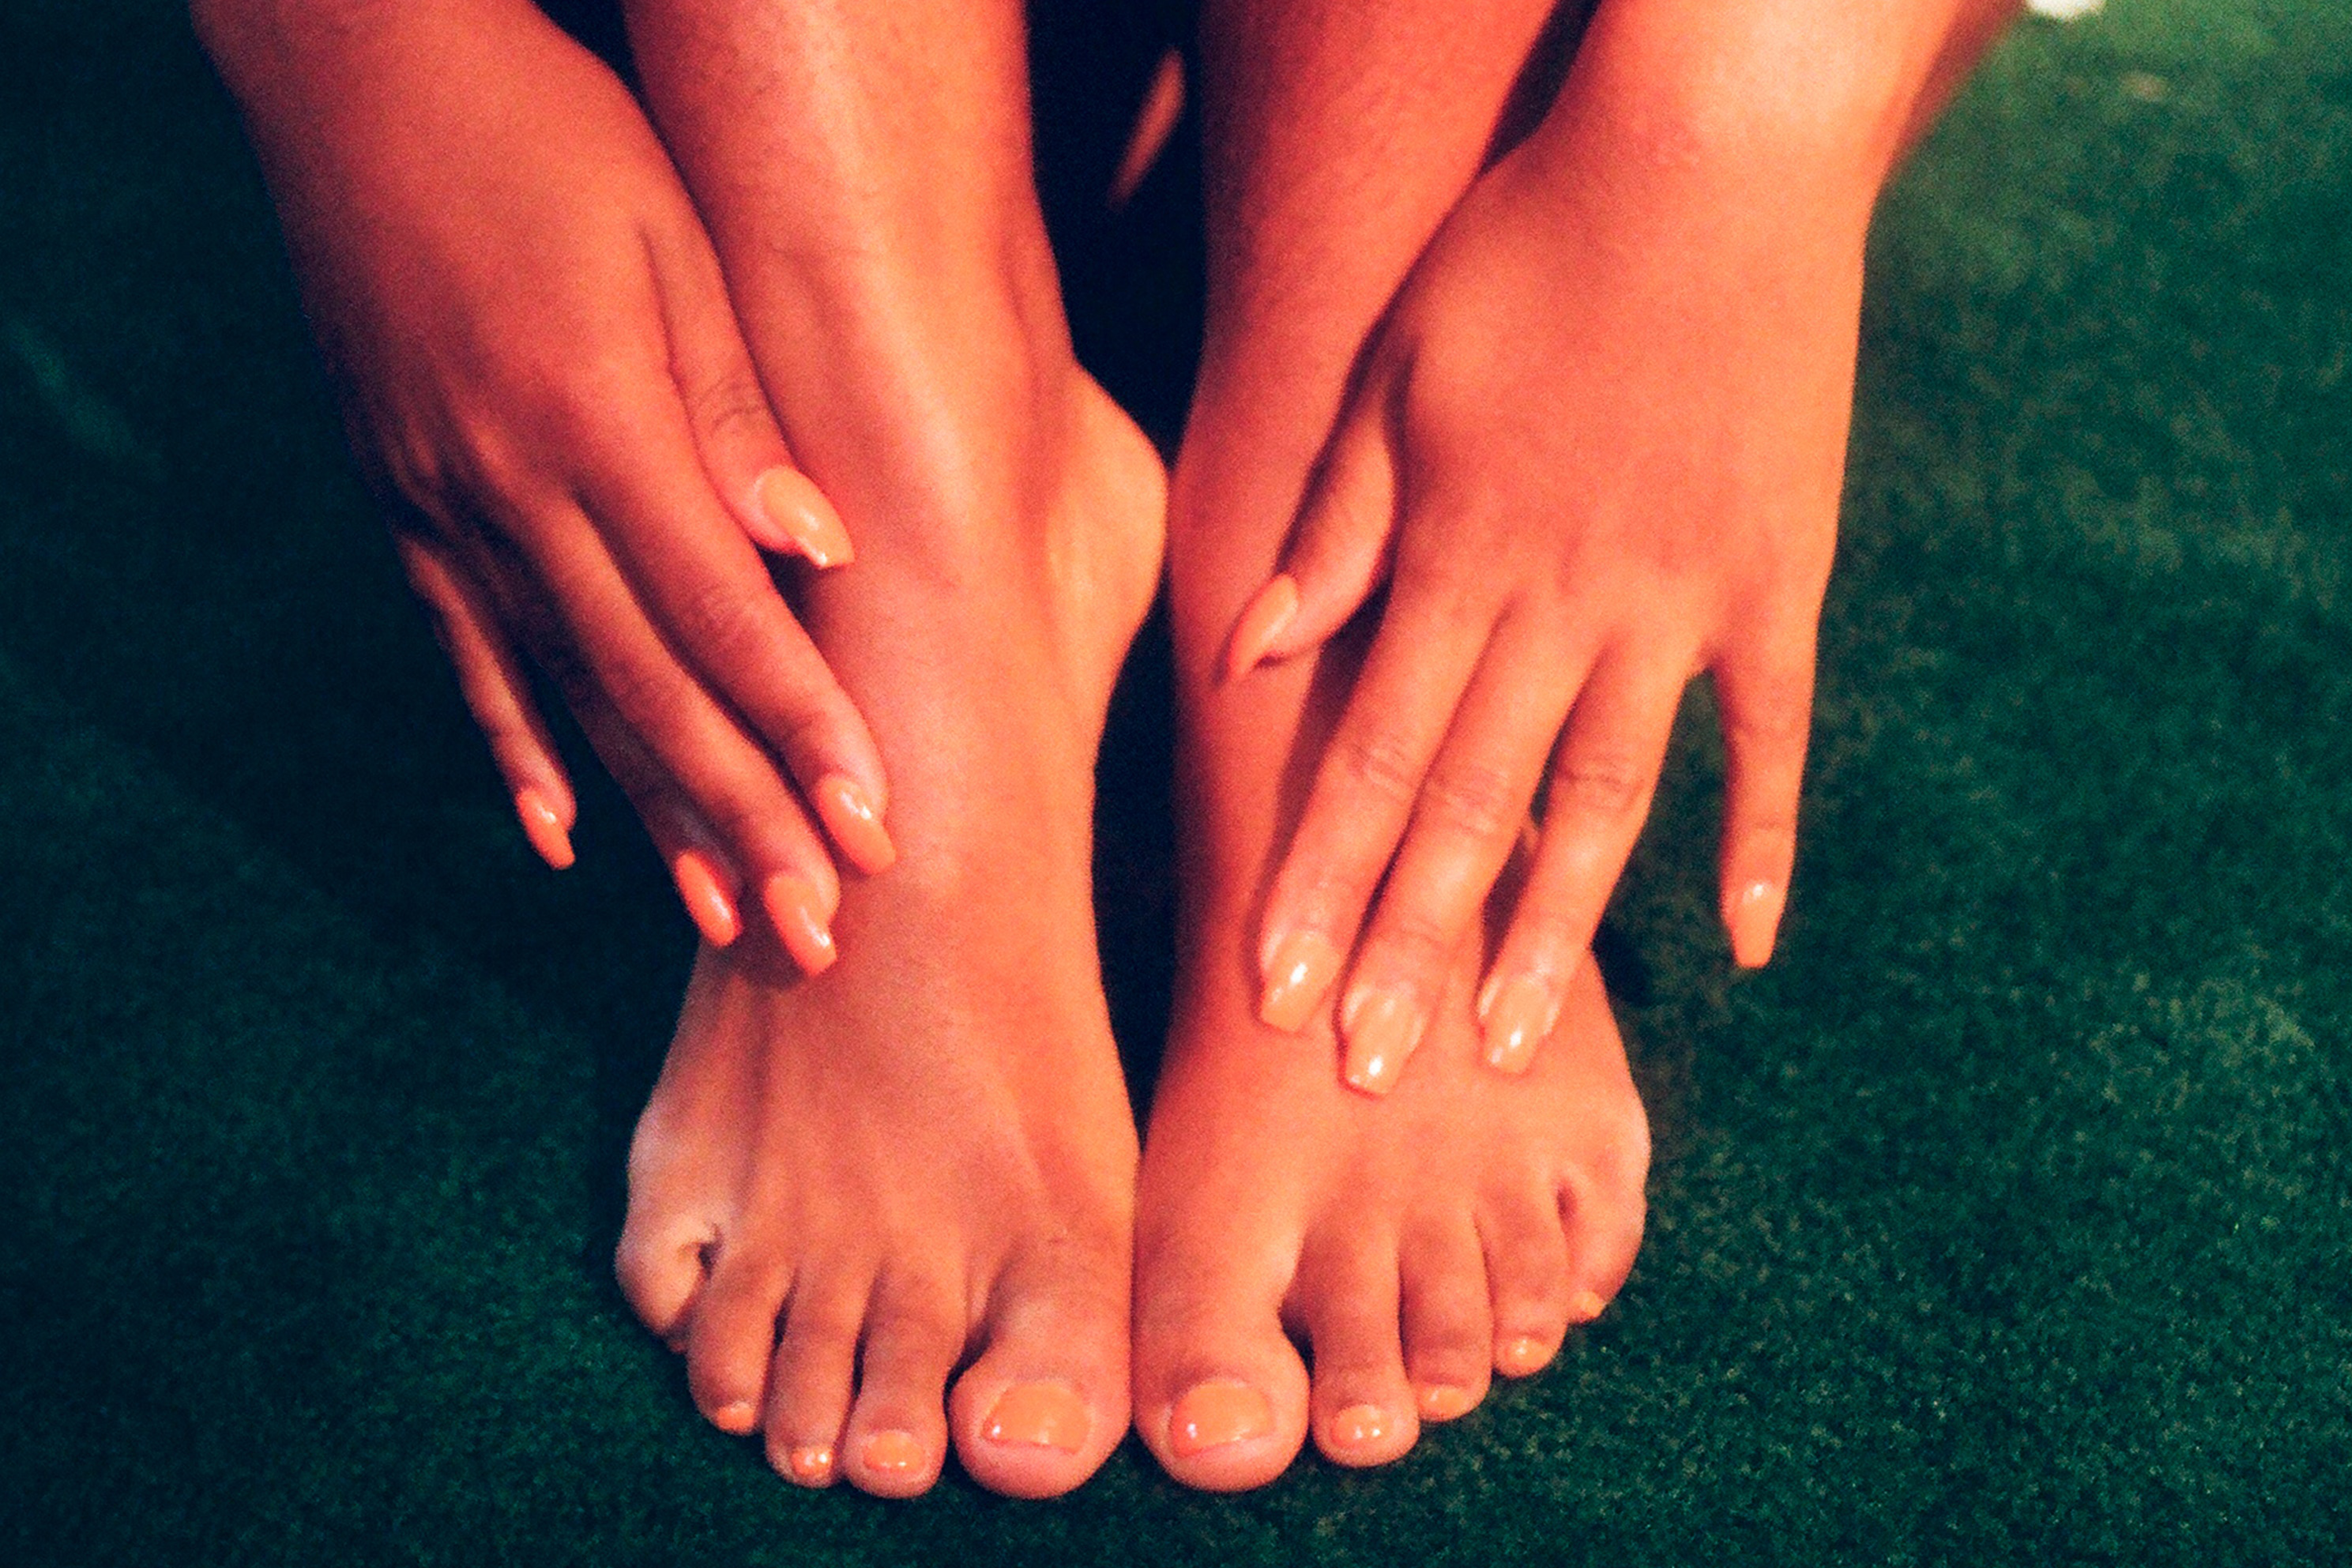 woman's hands and feet with pedicure